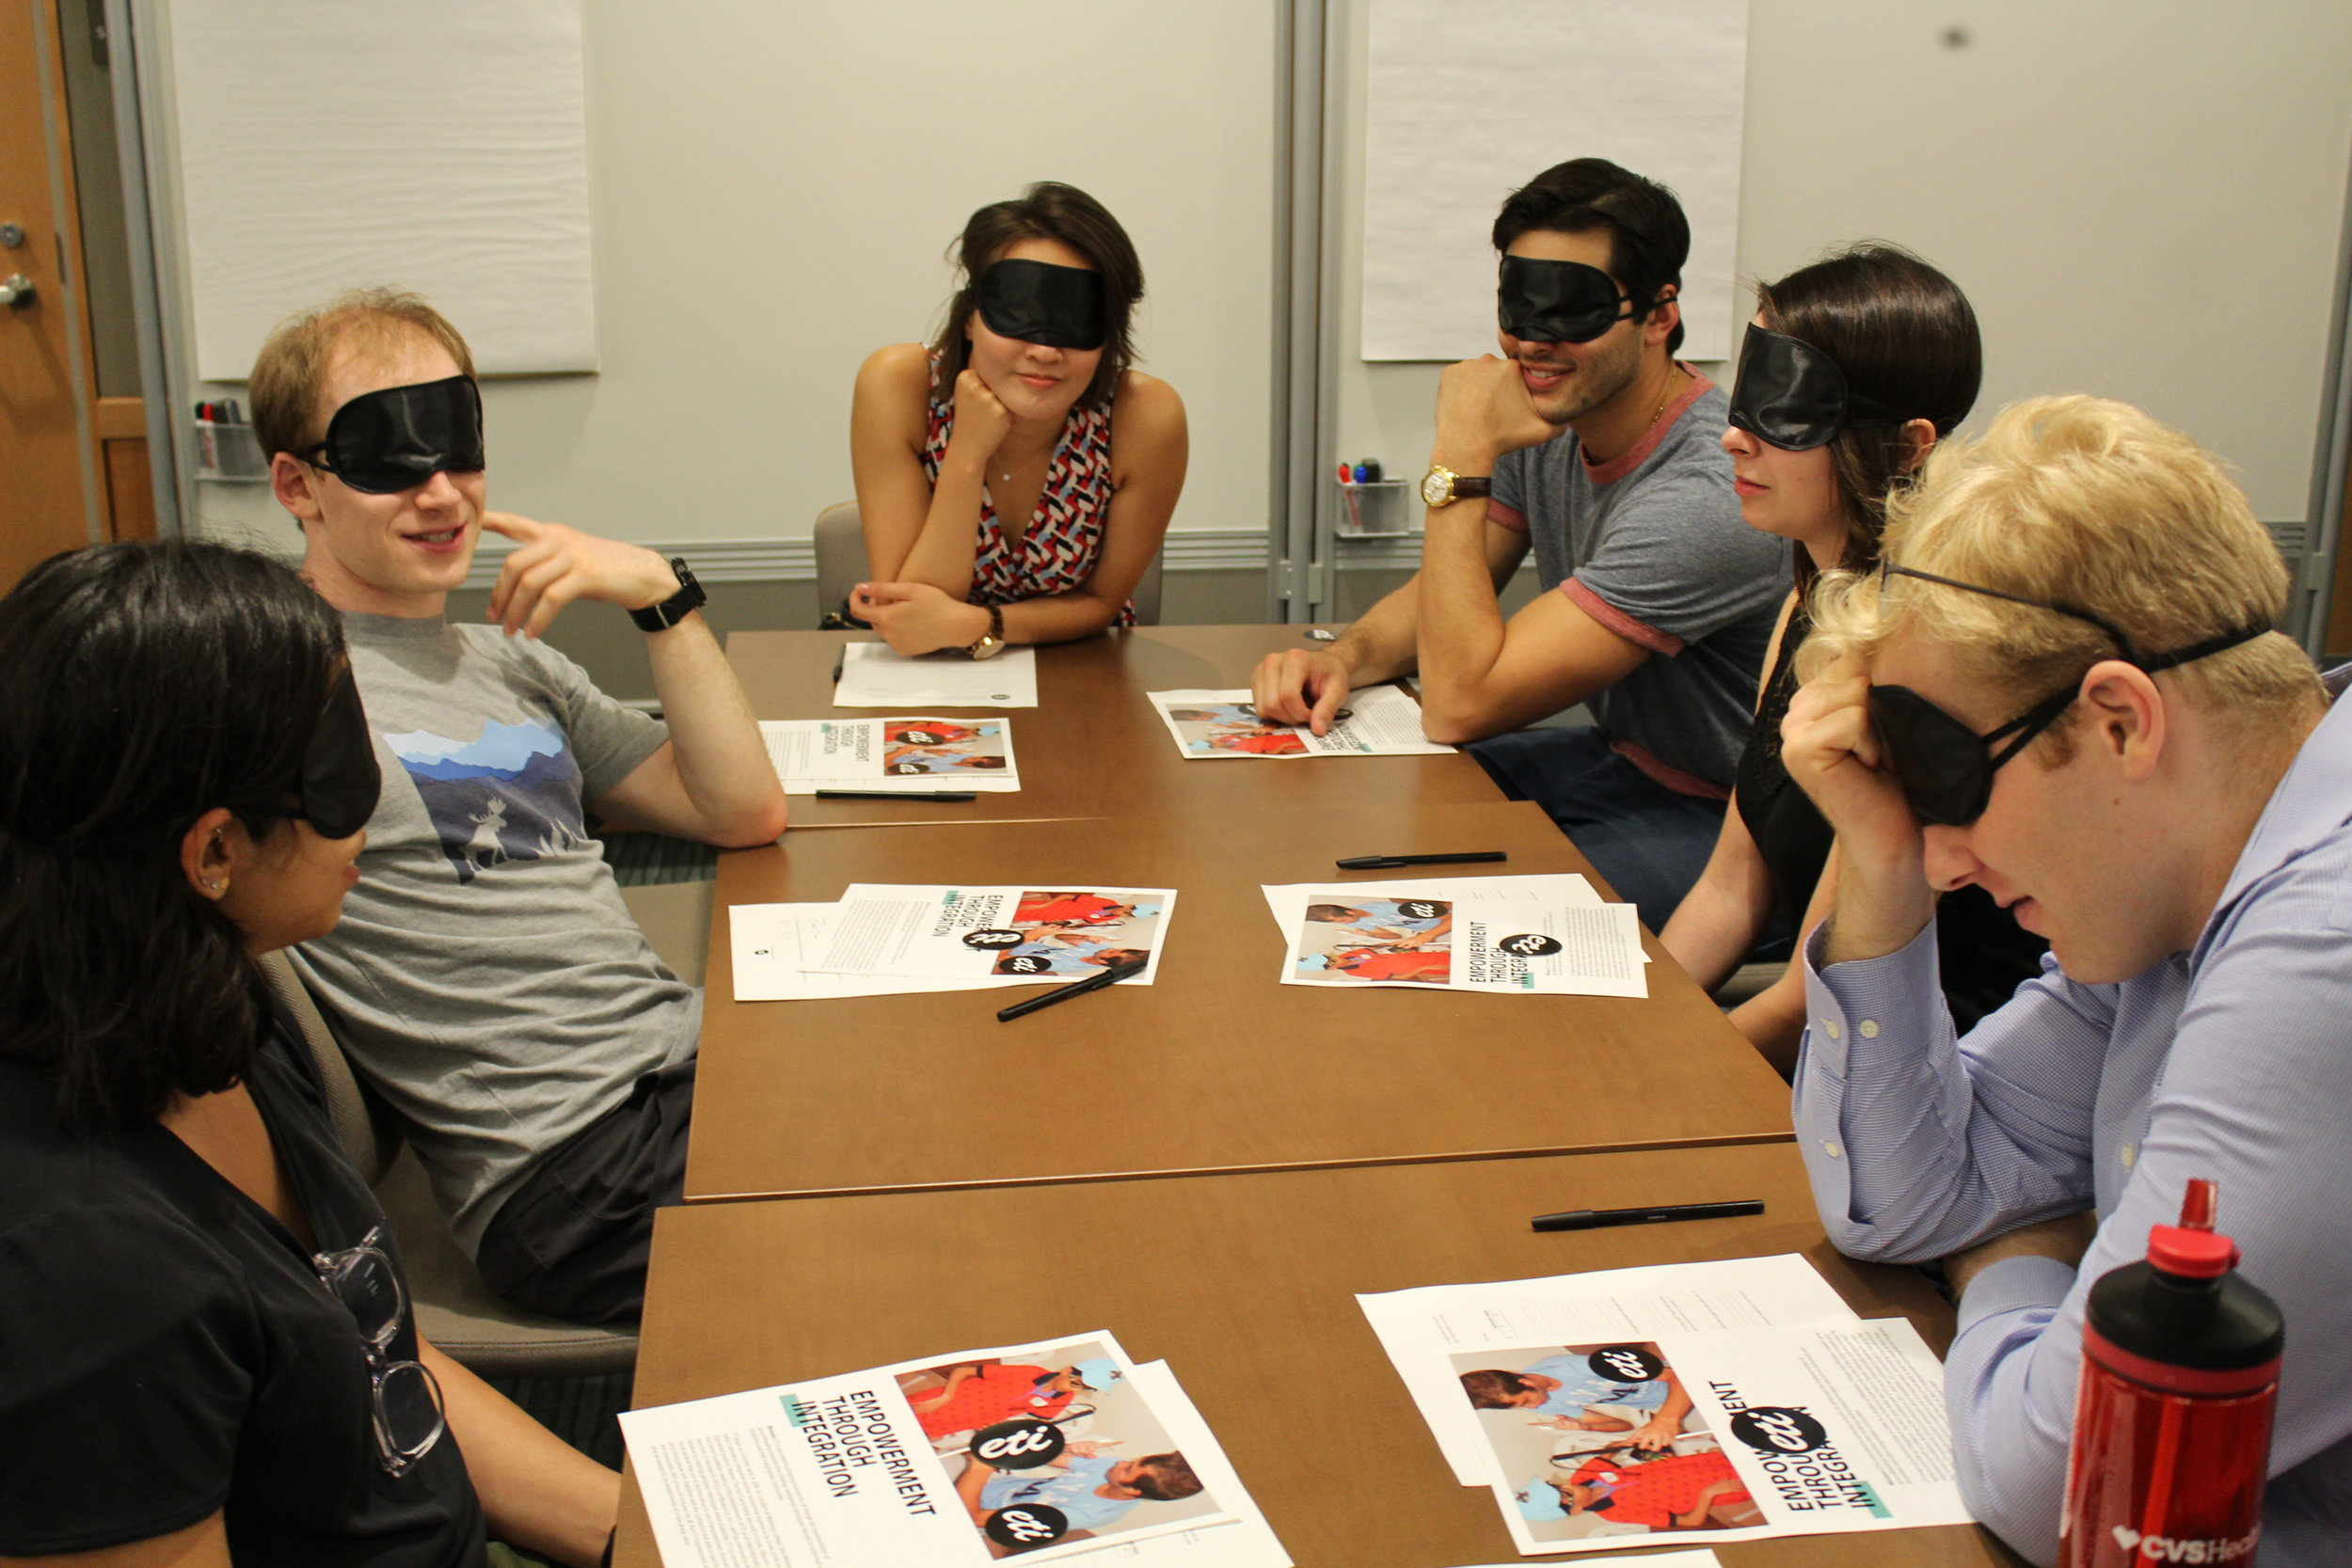 Six blindfolded participants sit around a table and think about the questions posed by the facilitator.